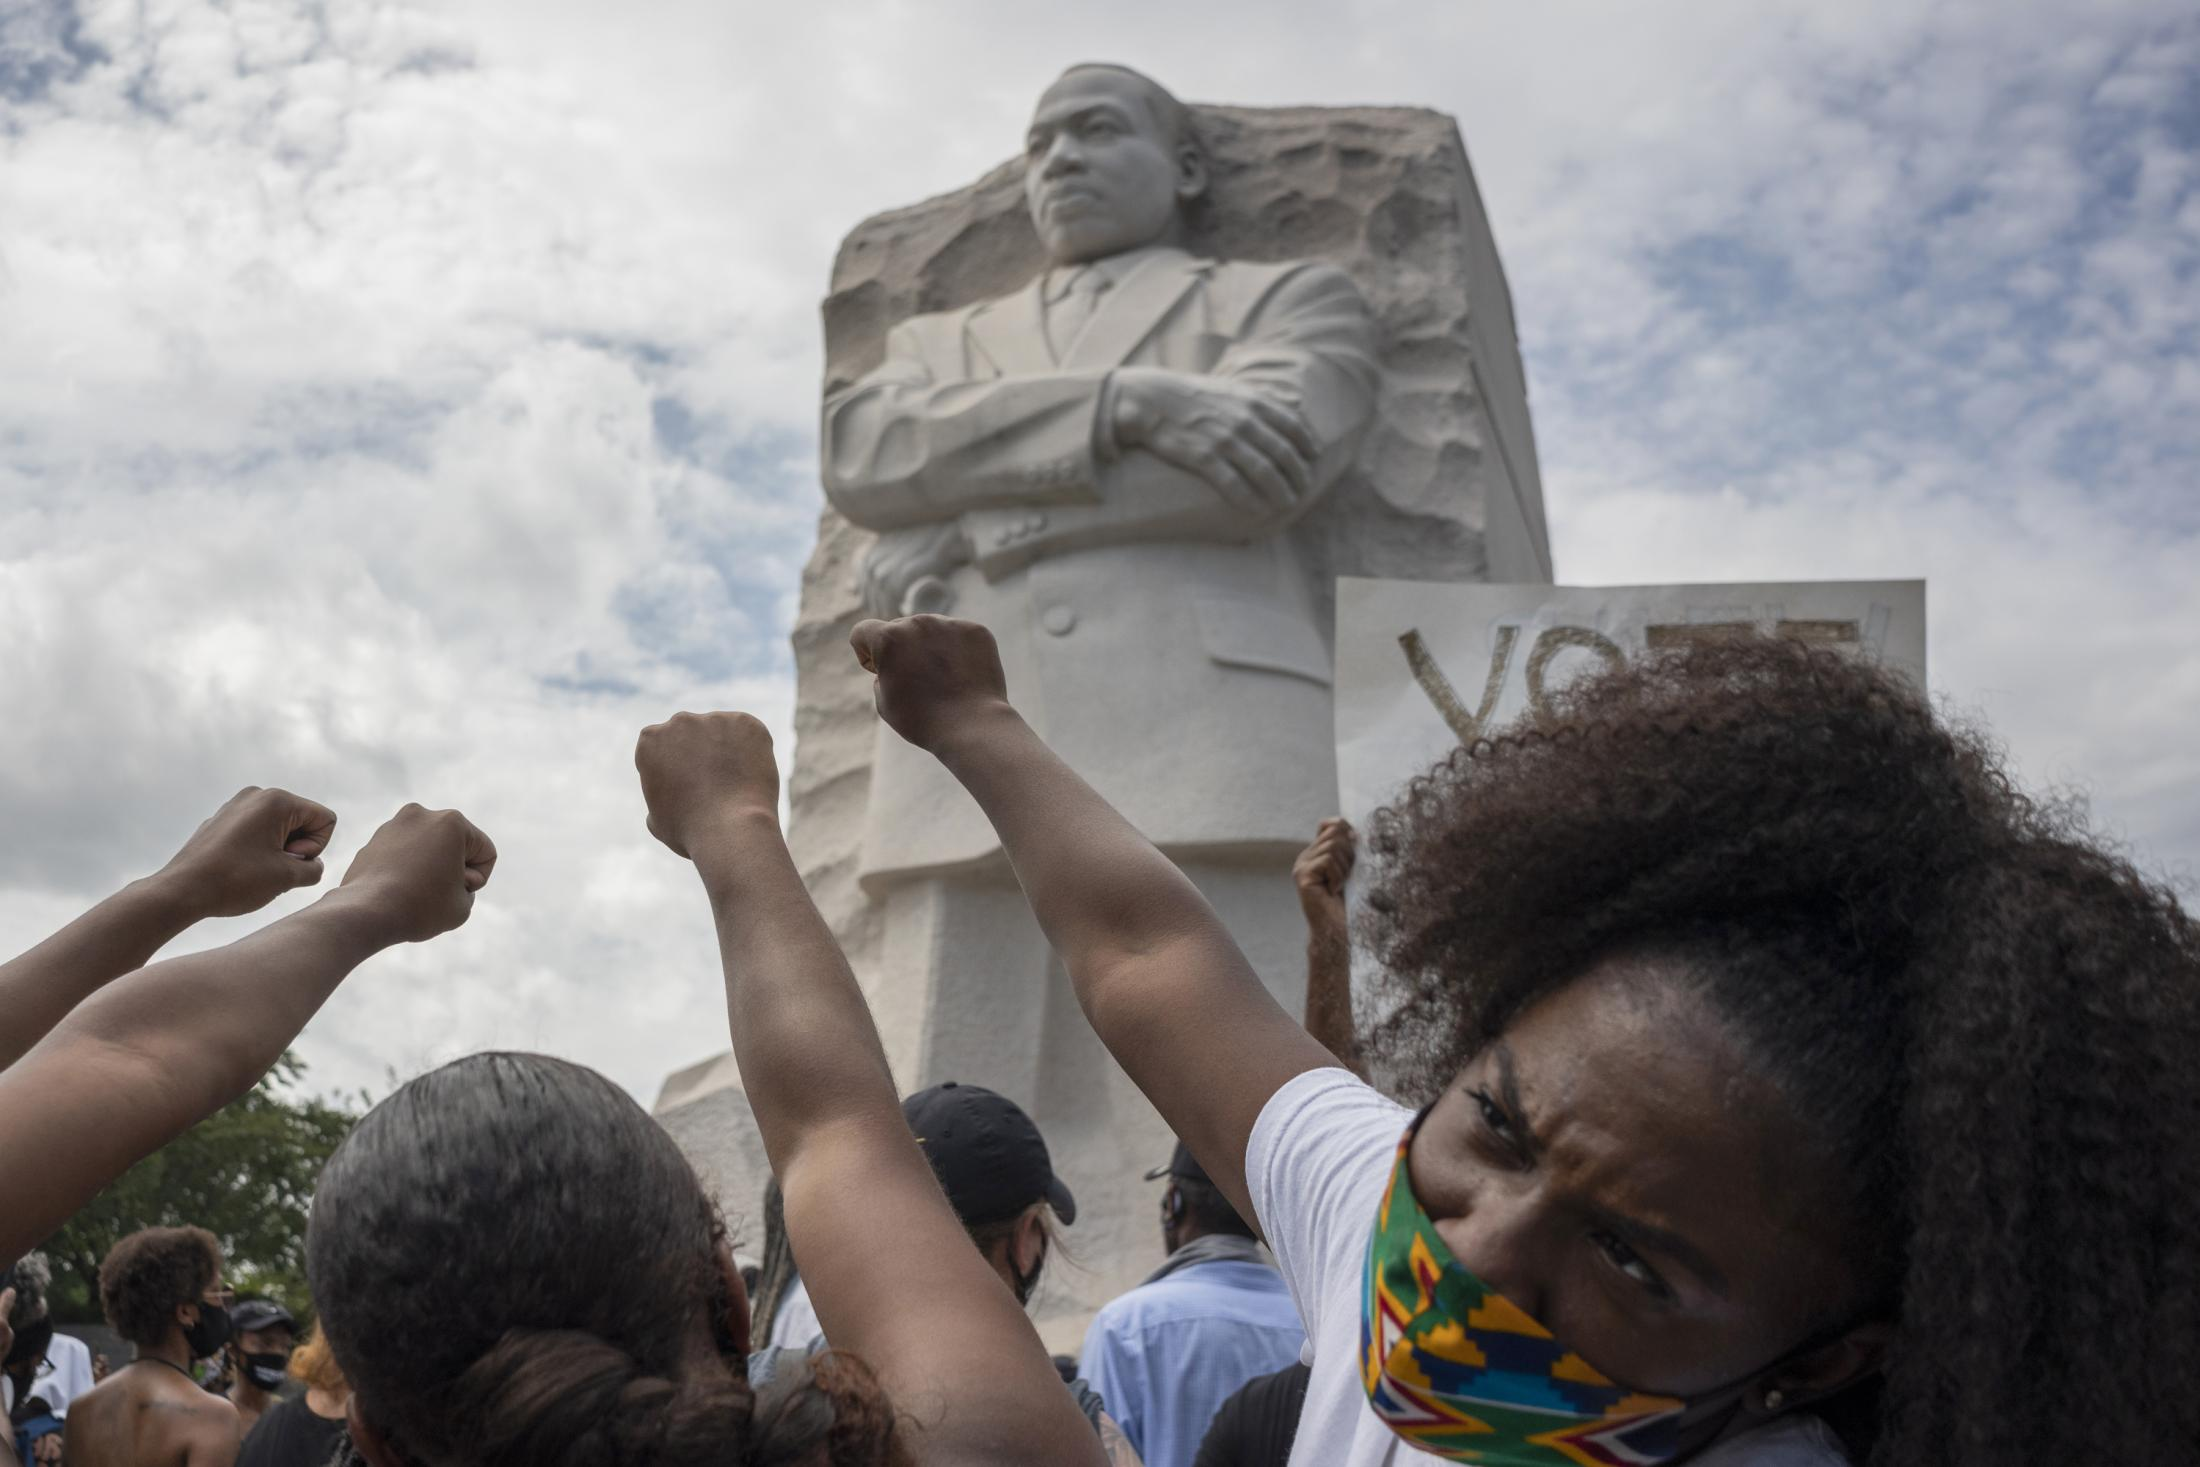 "Black women raise their fists in front of the MLK Memorial during the 57th annual March on Washington, Friday, August 28, 2020 in Washington, D.C. , Maryland. Also referred to as the ""Get Off Our Necks"" march, this year's march focused on the recent Black Lives Matter movement while commemorating the work of previous civil rights leaders."